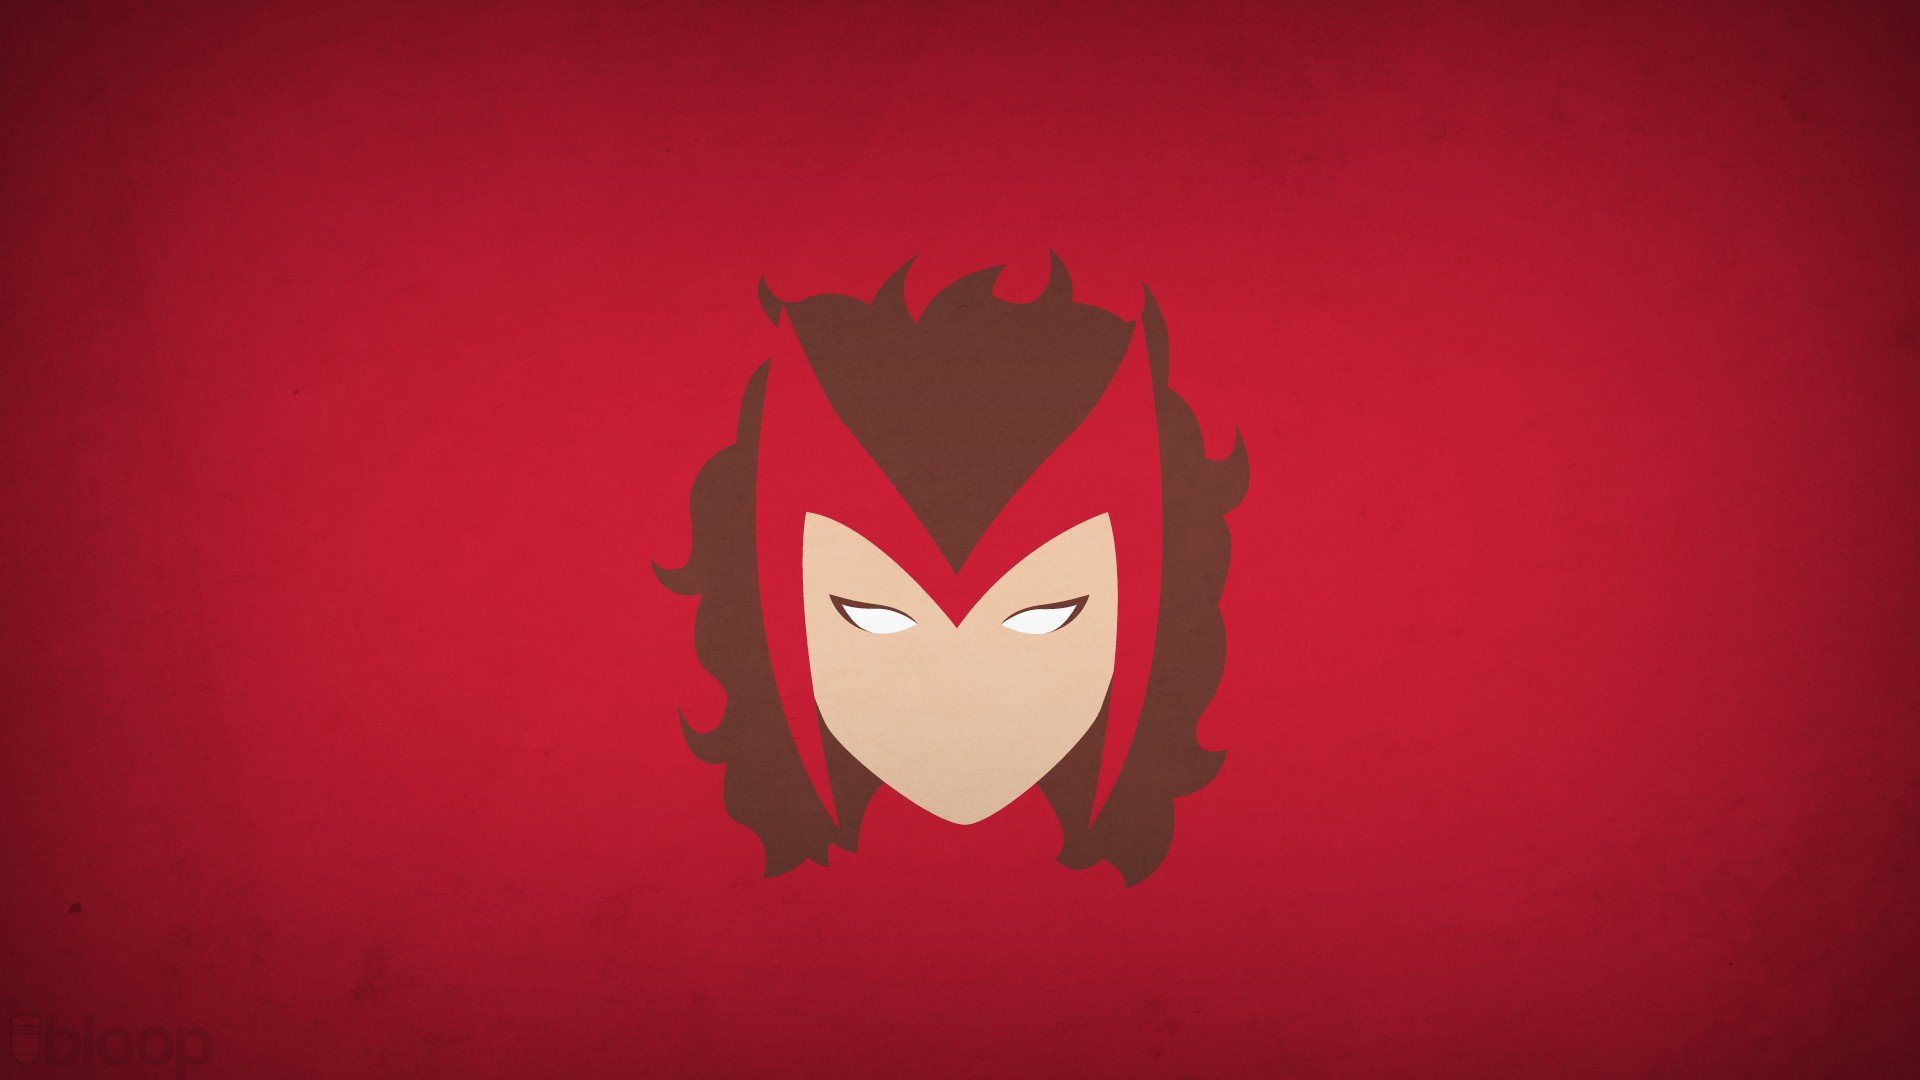 minimalistic superheroes Marvel Comics Scarlet Witch red background 1920x1080